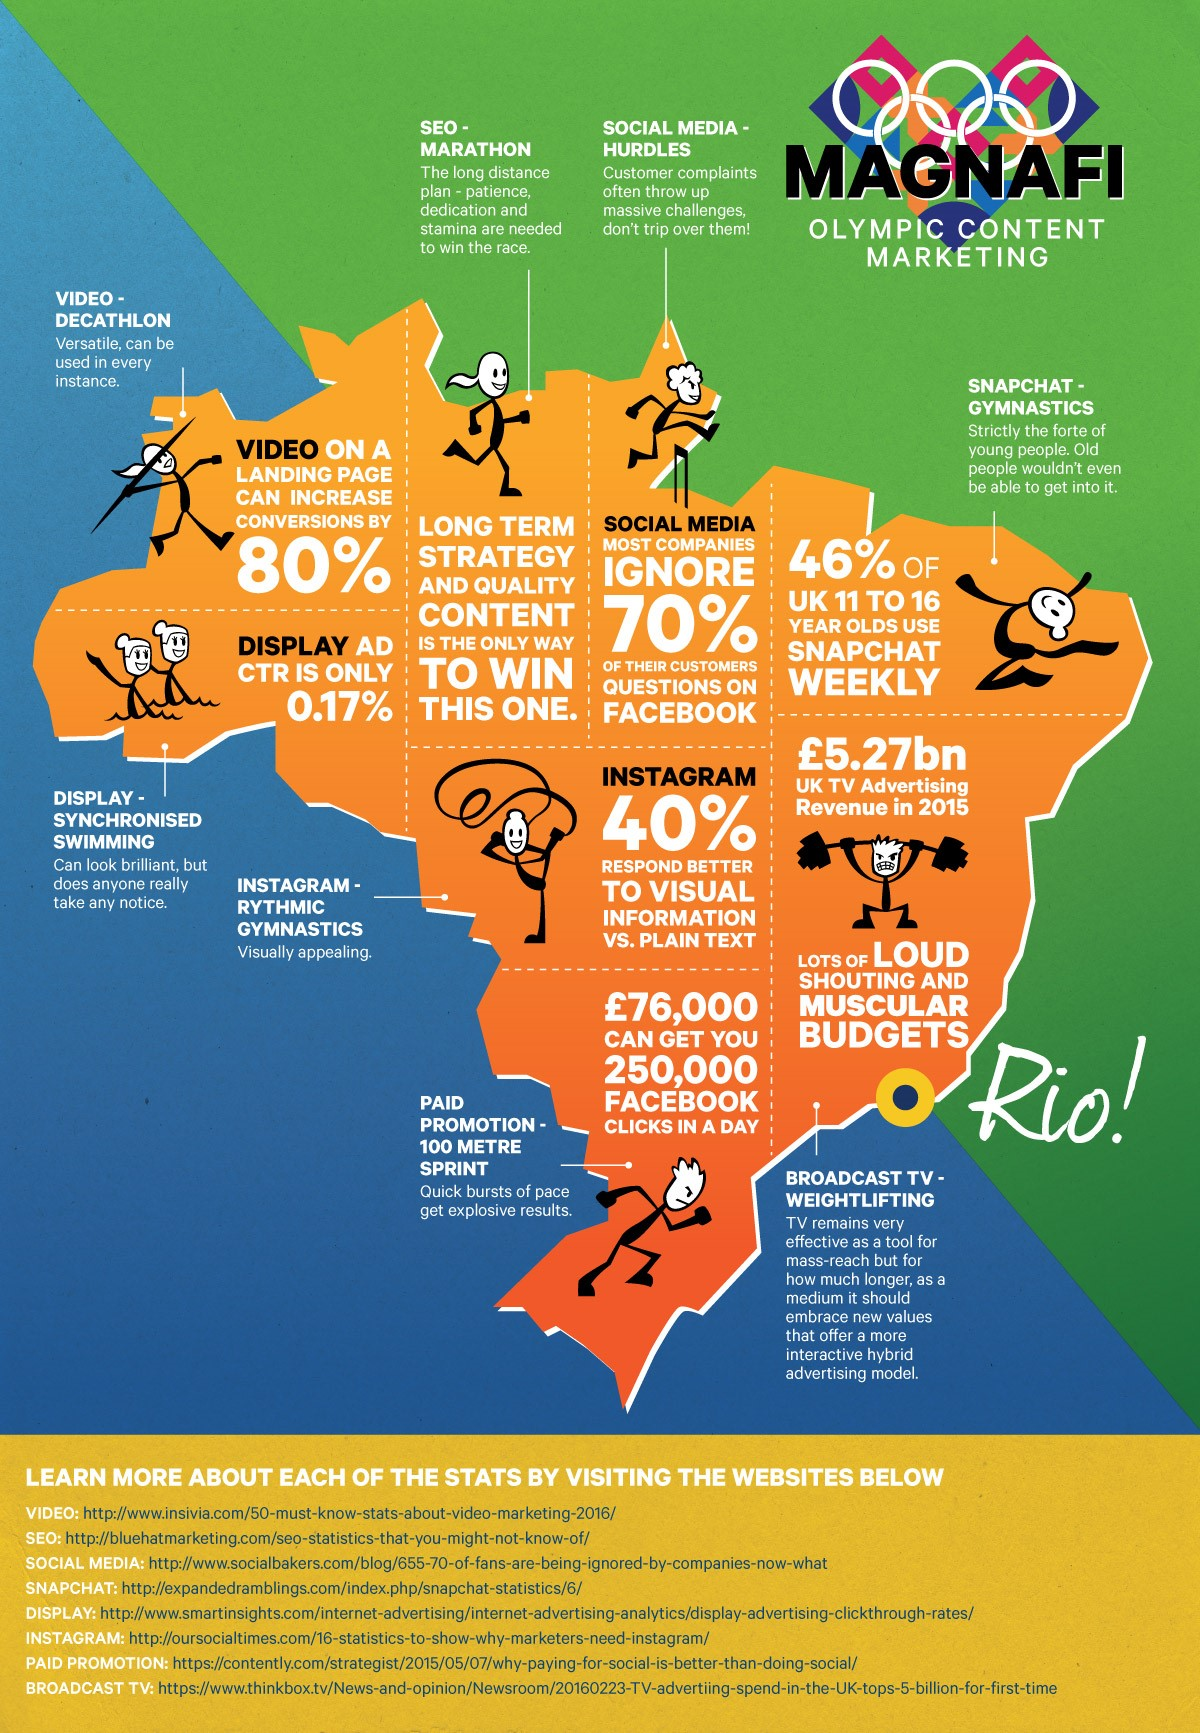 The Content Marketing Olympics - Rio